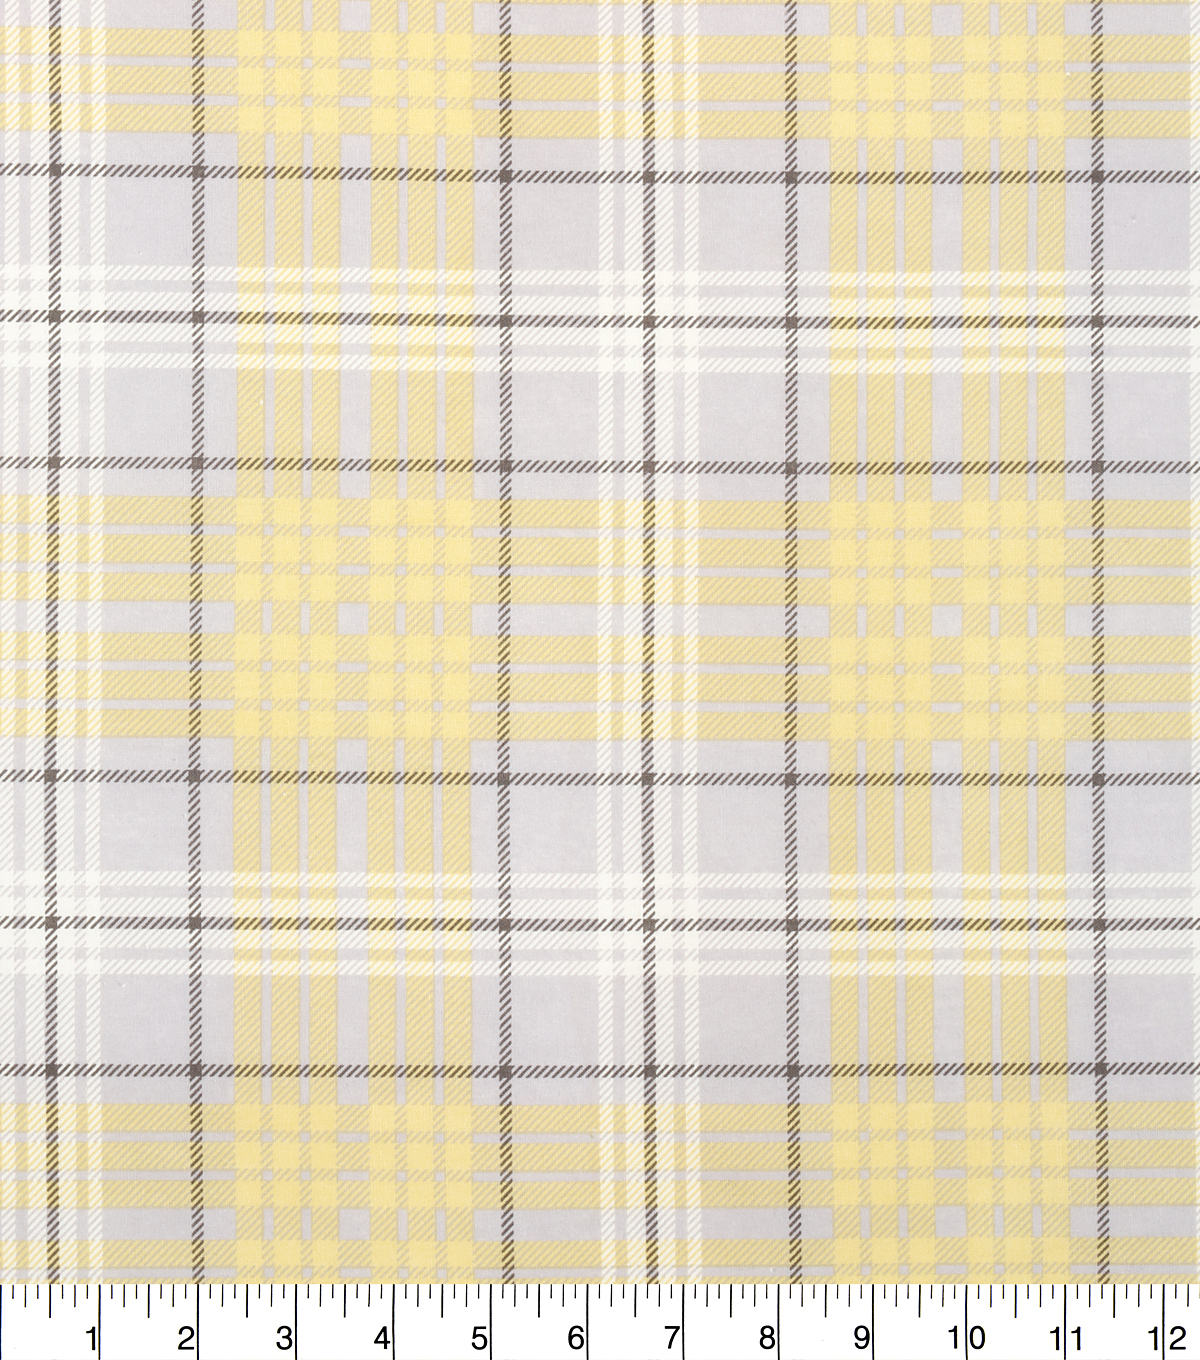 Keepsake Calico Fabric - Plaid Yellow Gray